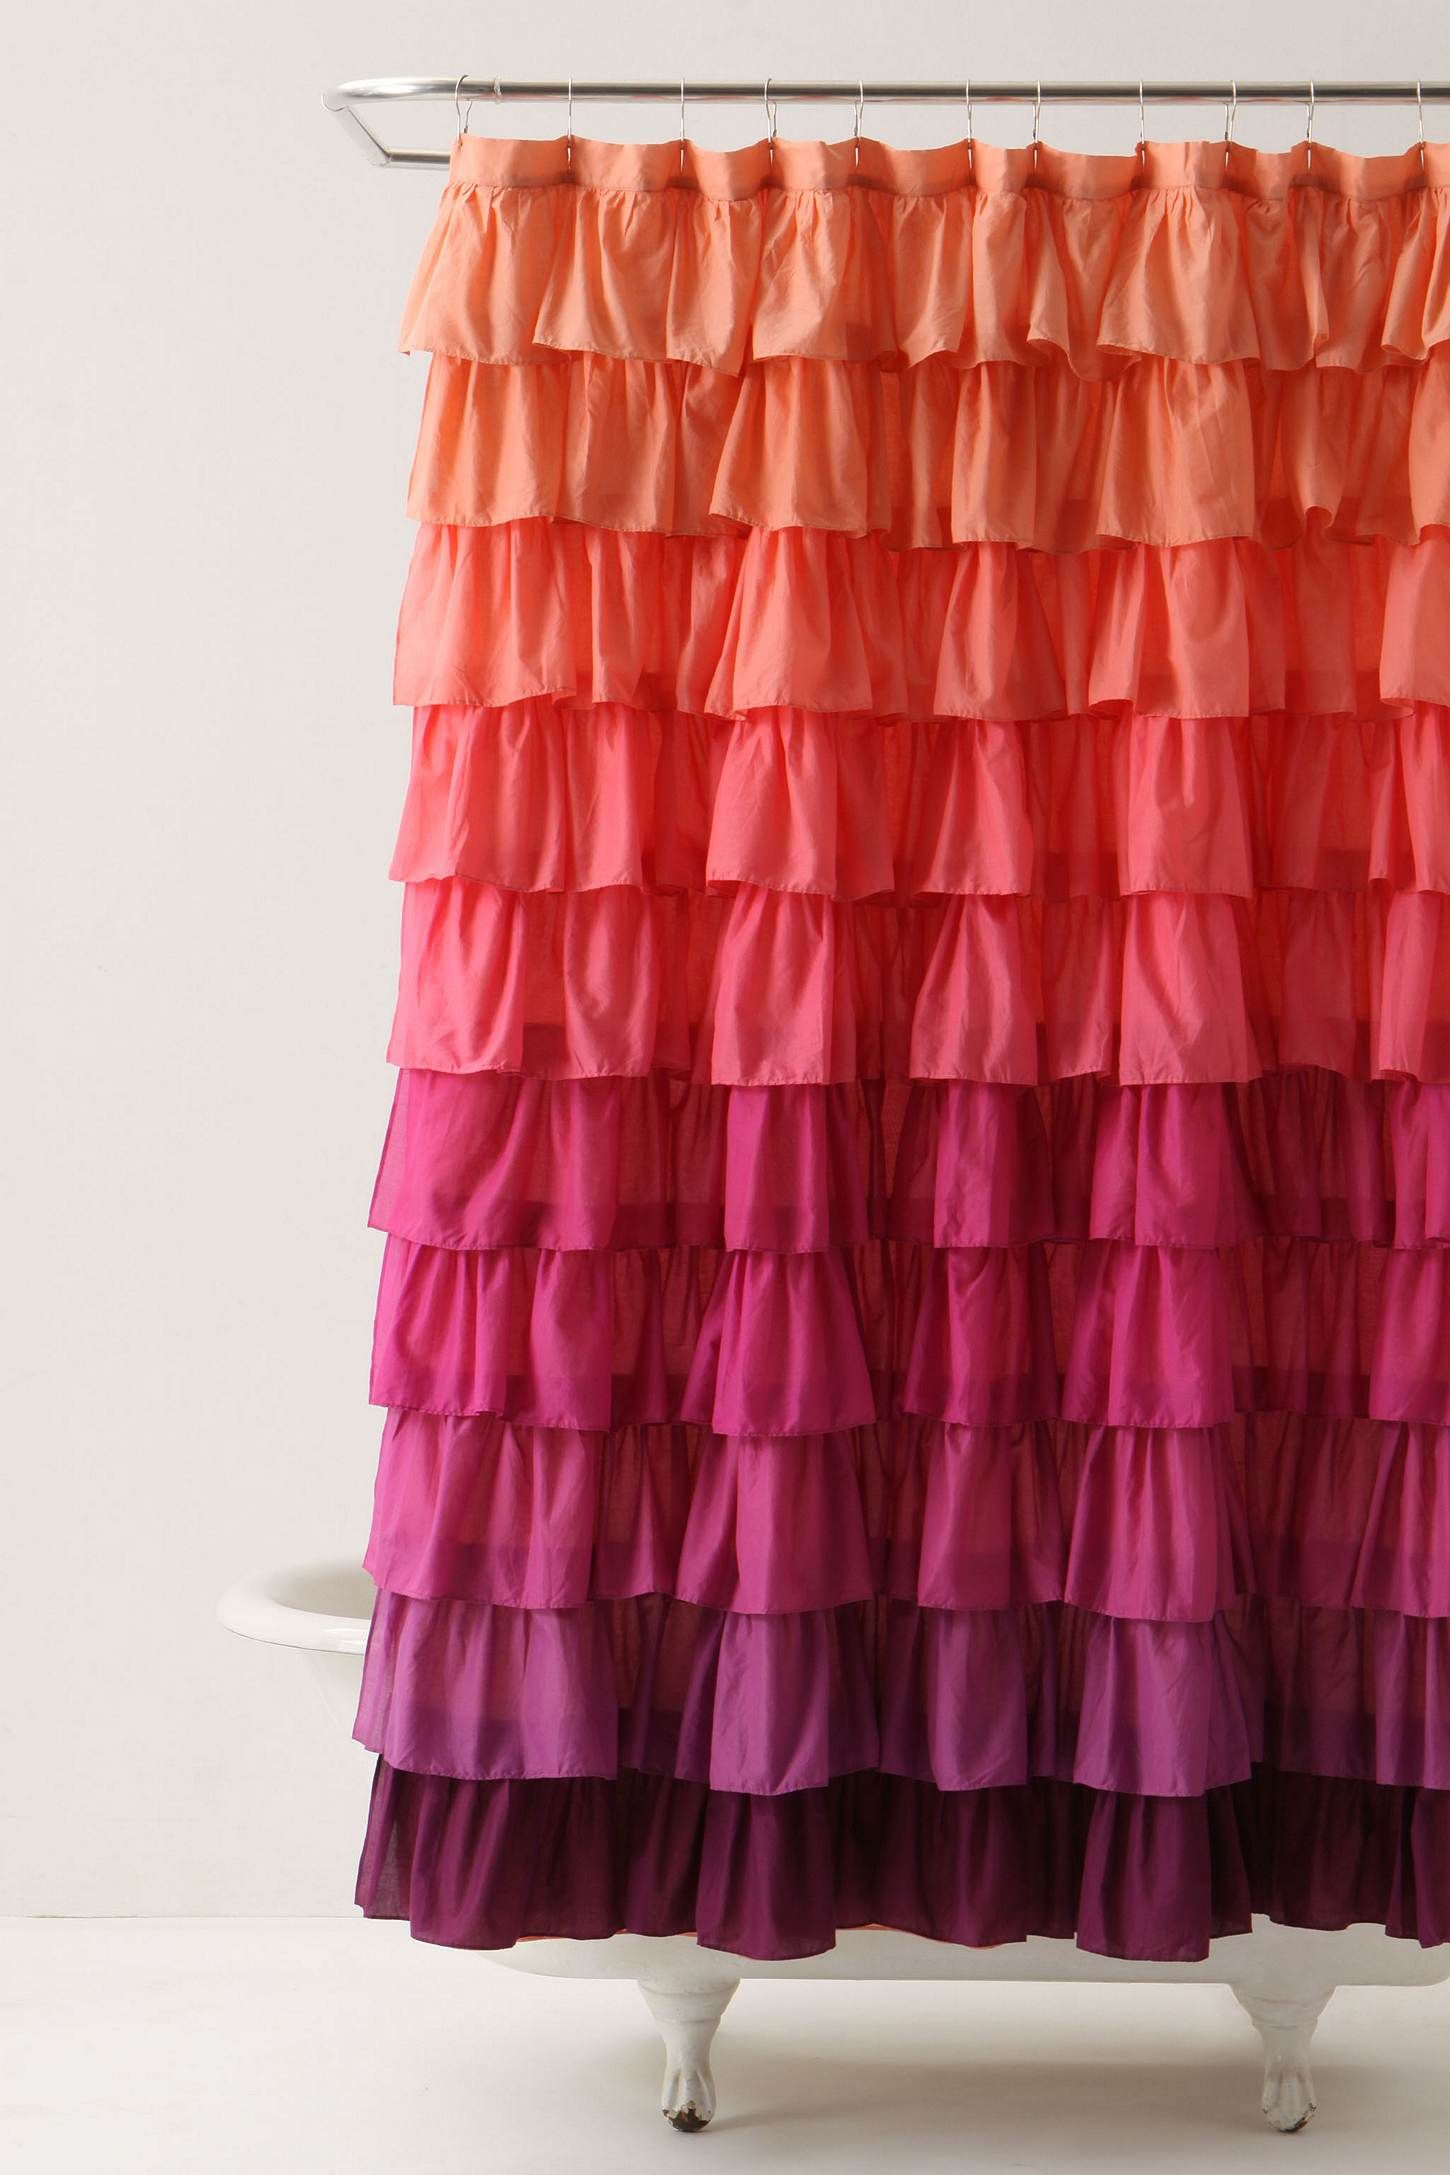 This ruffled shower curtain reminds me of a ballet dancer divine